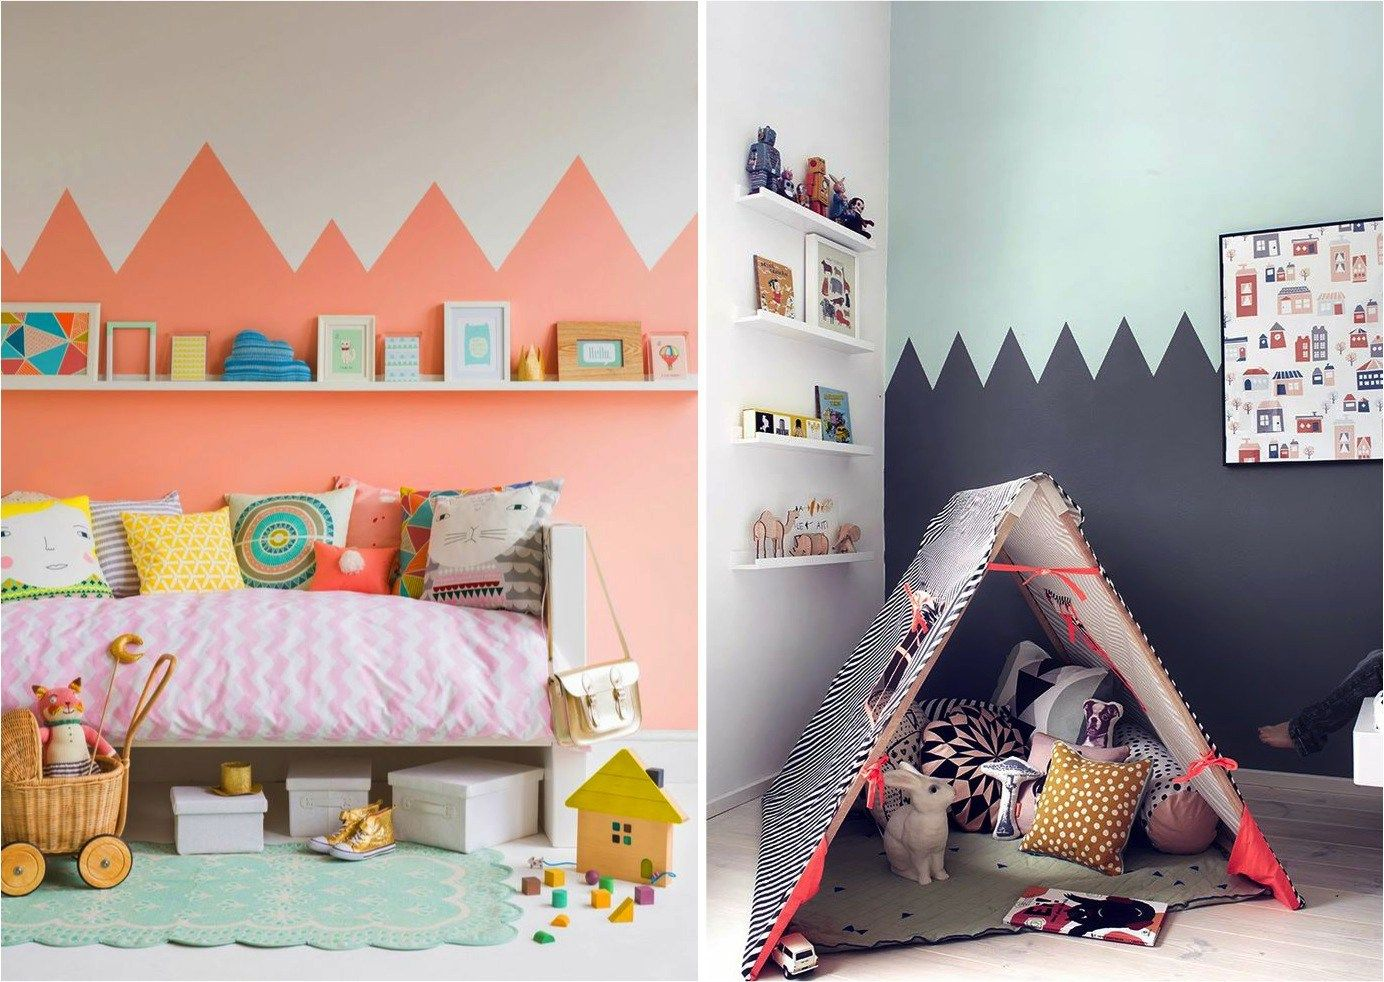 Fun And Creative Paint Ideas For Your Walls Two Tone Walls Kids Room Paint Kid Room Decor